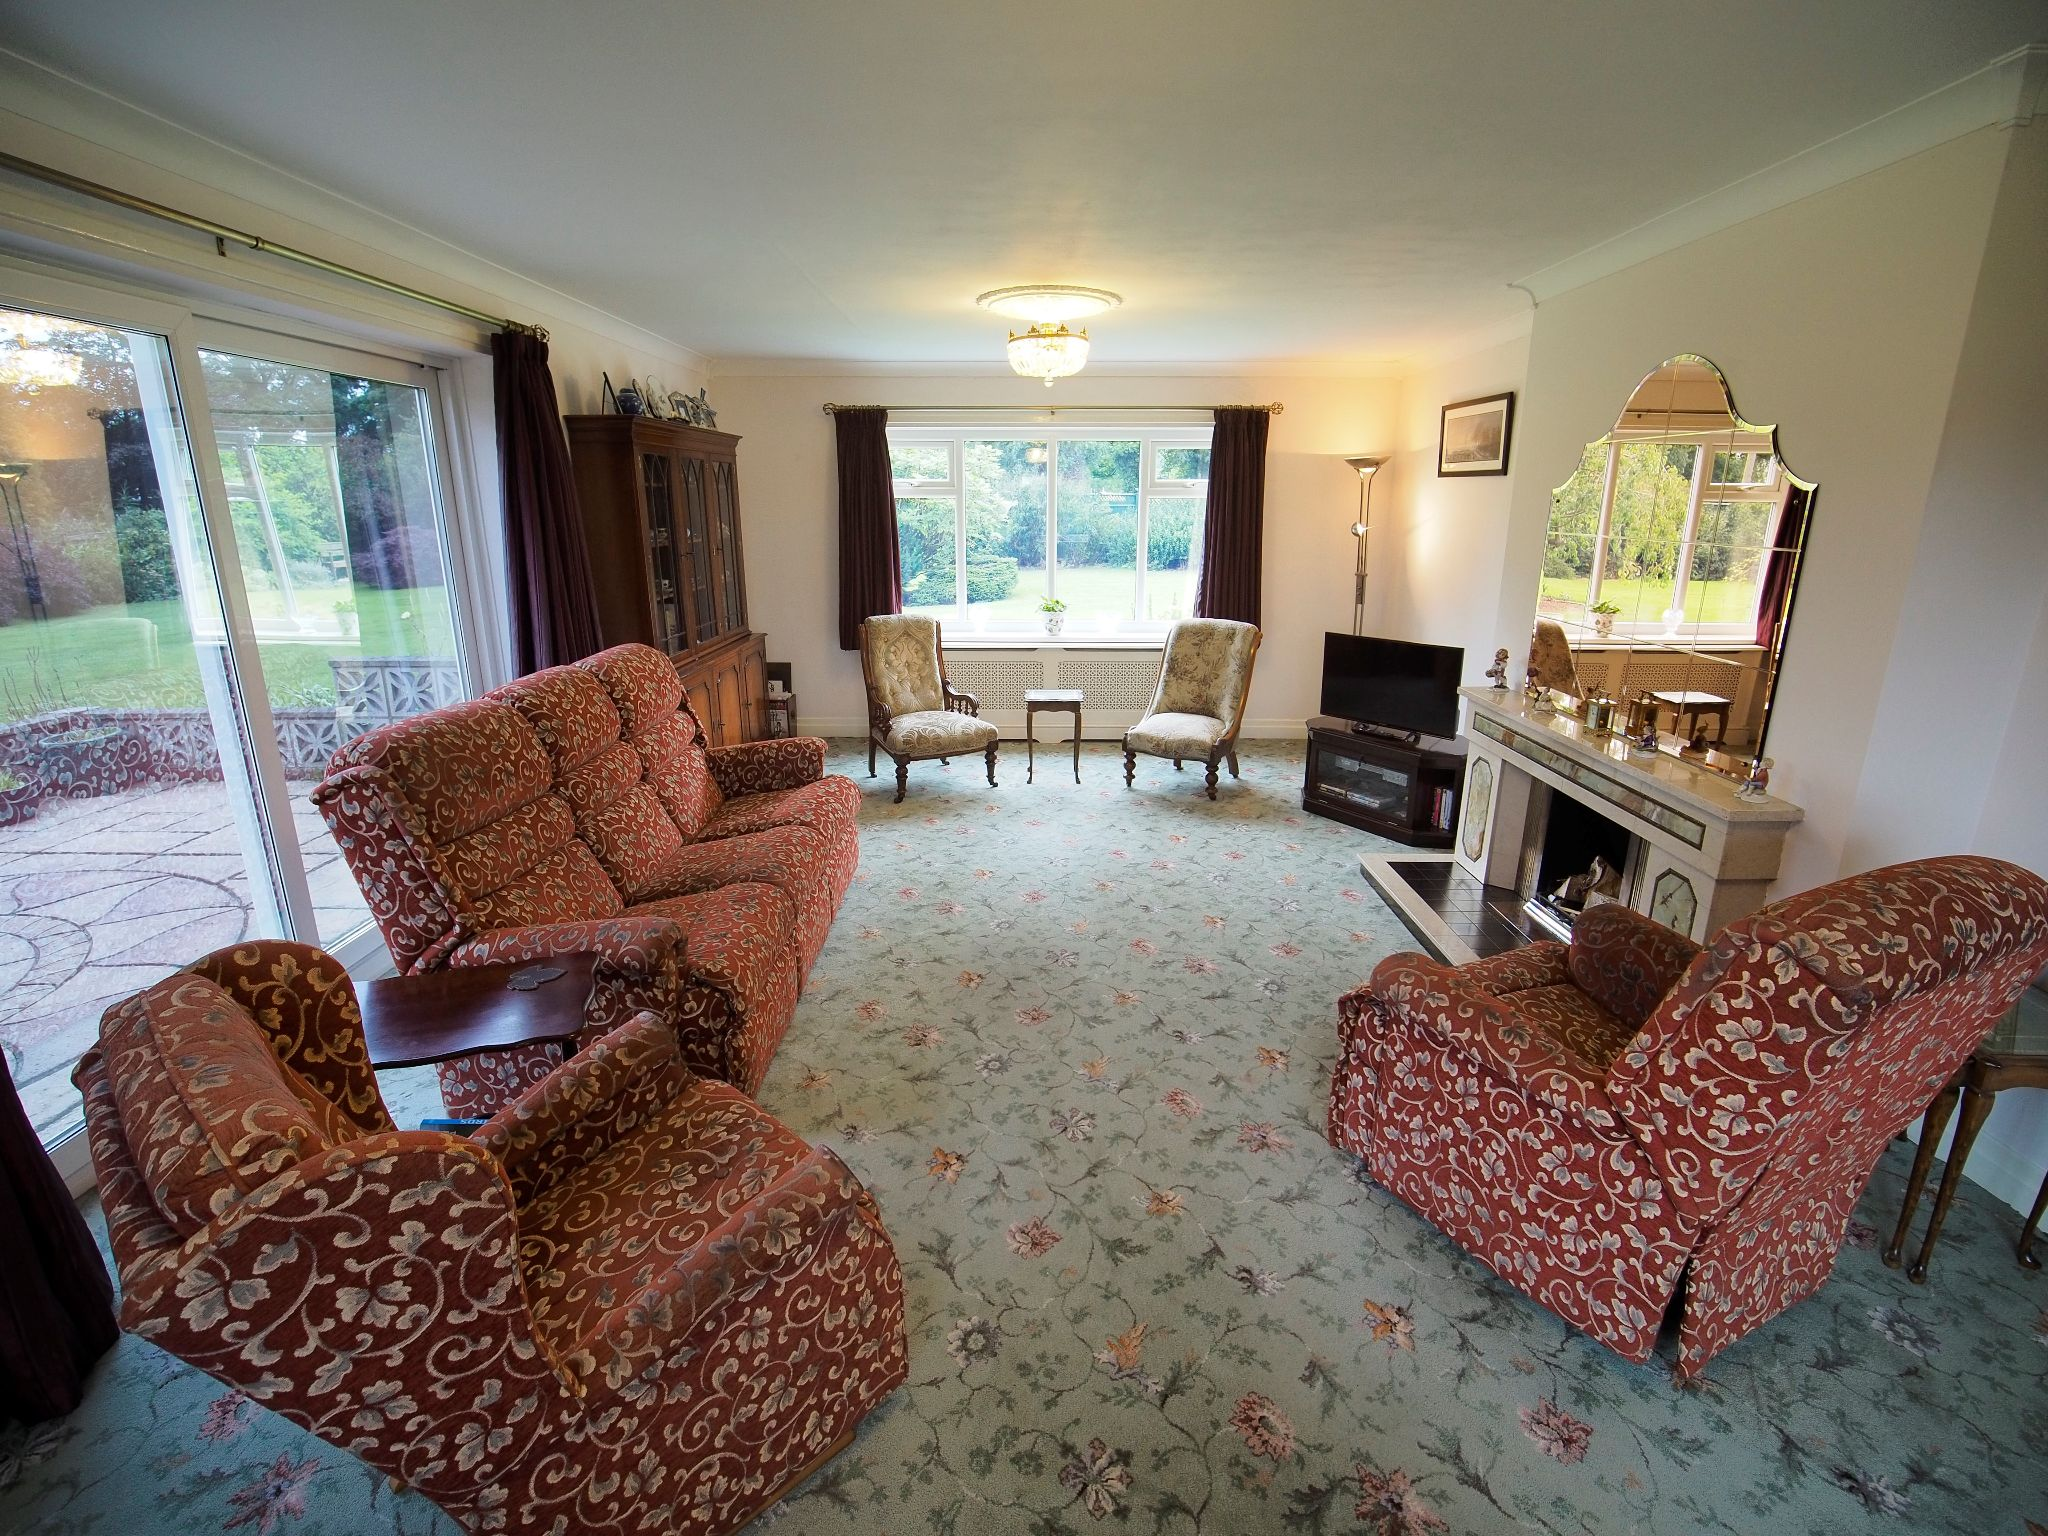 4 bedroom detached house For Sale in Willington - Large Lounge.